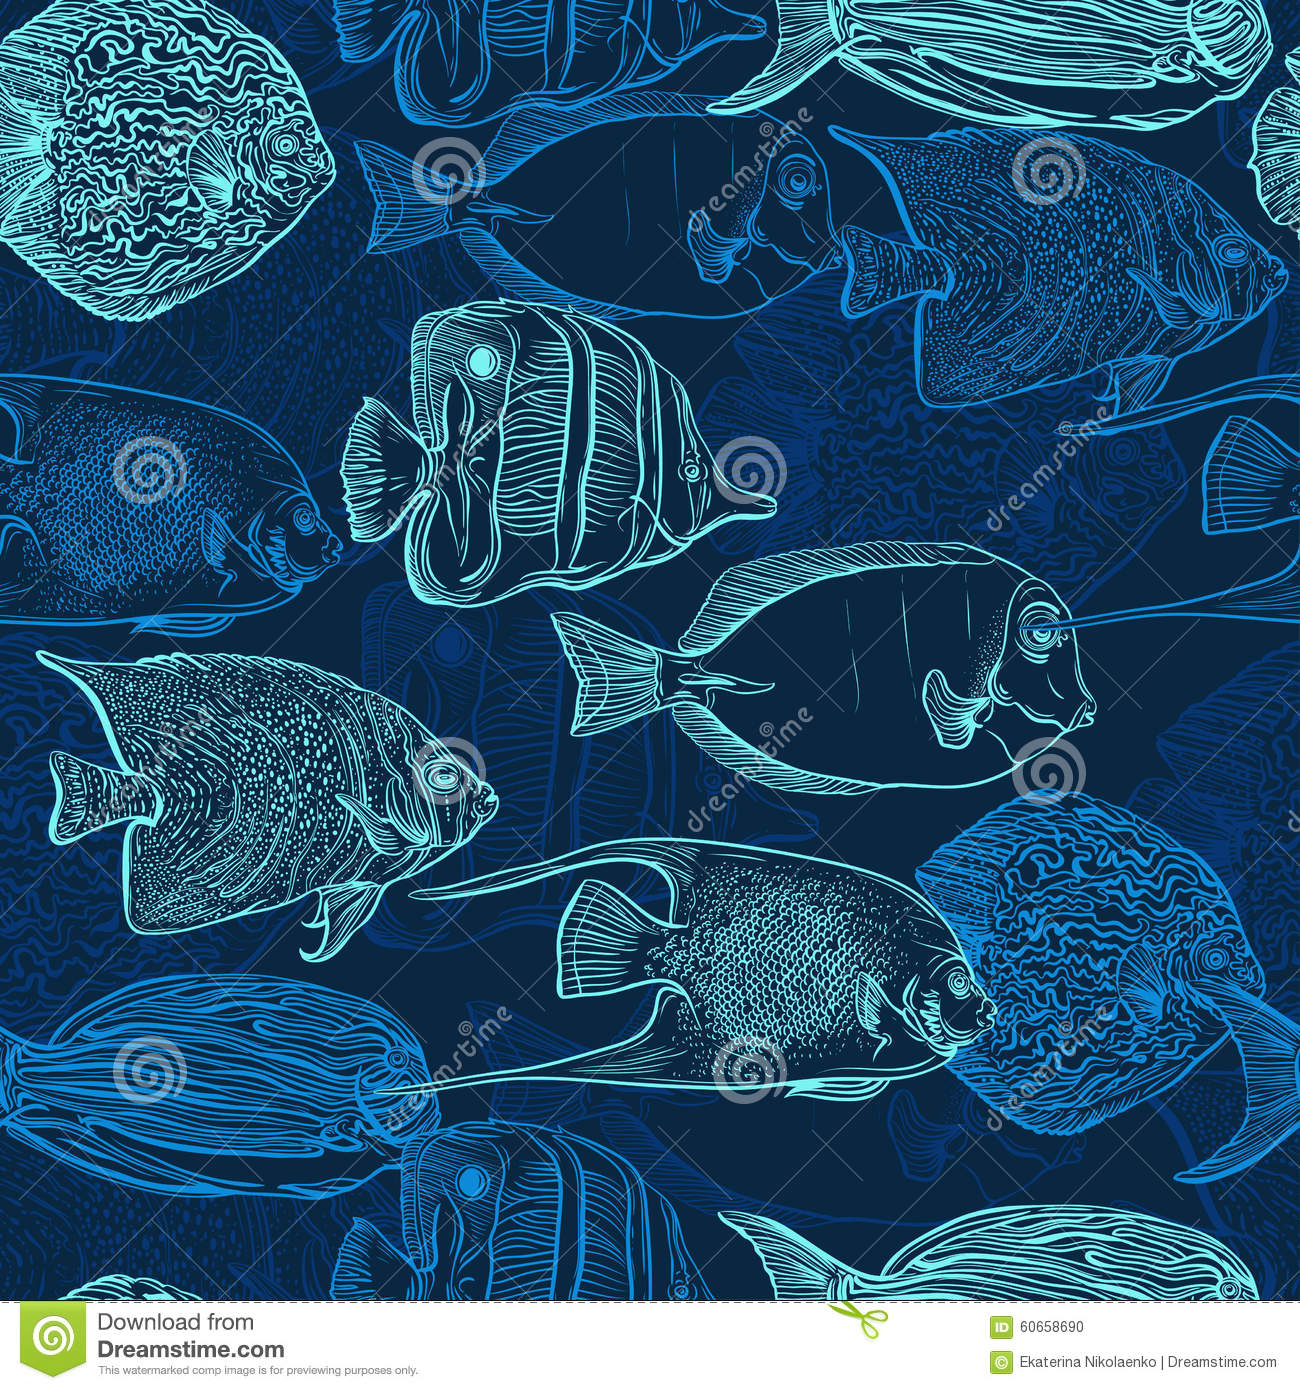 Download Seamless Pattern With Collection Of Tropical Fish Vintage Set Hand Drawn Marine Fauna